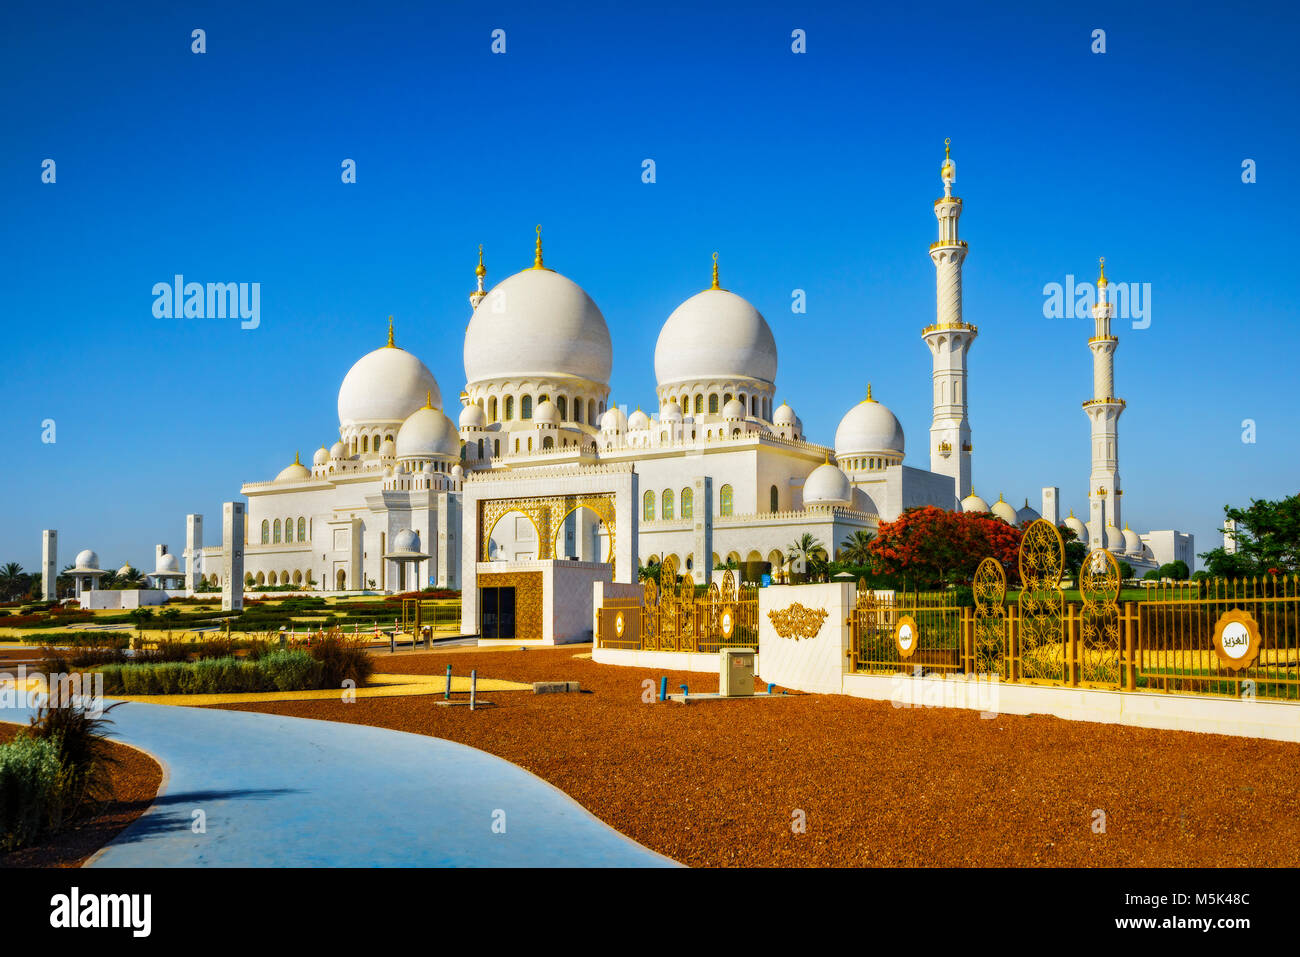 L'imposant la Grande Mosquée Sheikh Zayed à Abu Dhabi Photo Stock